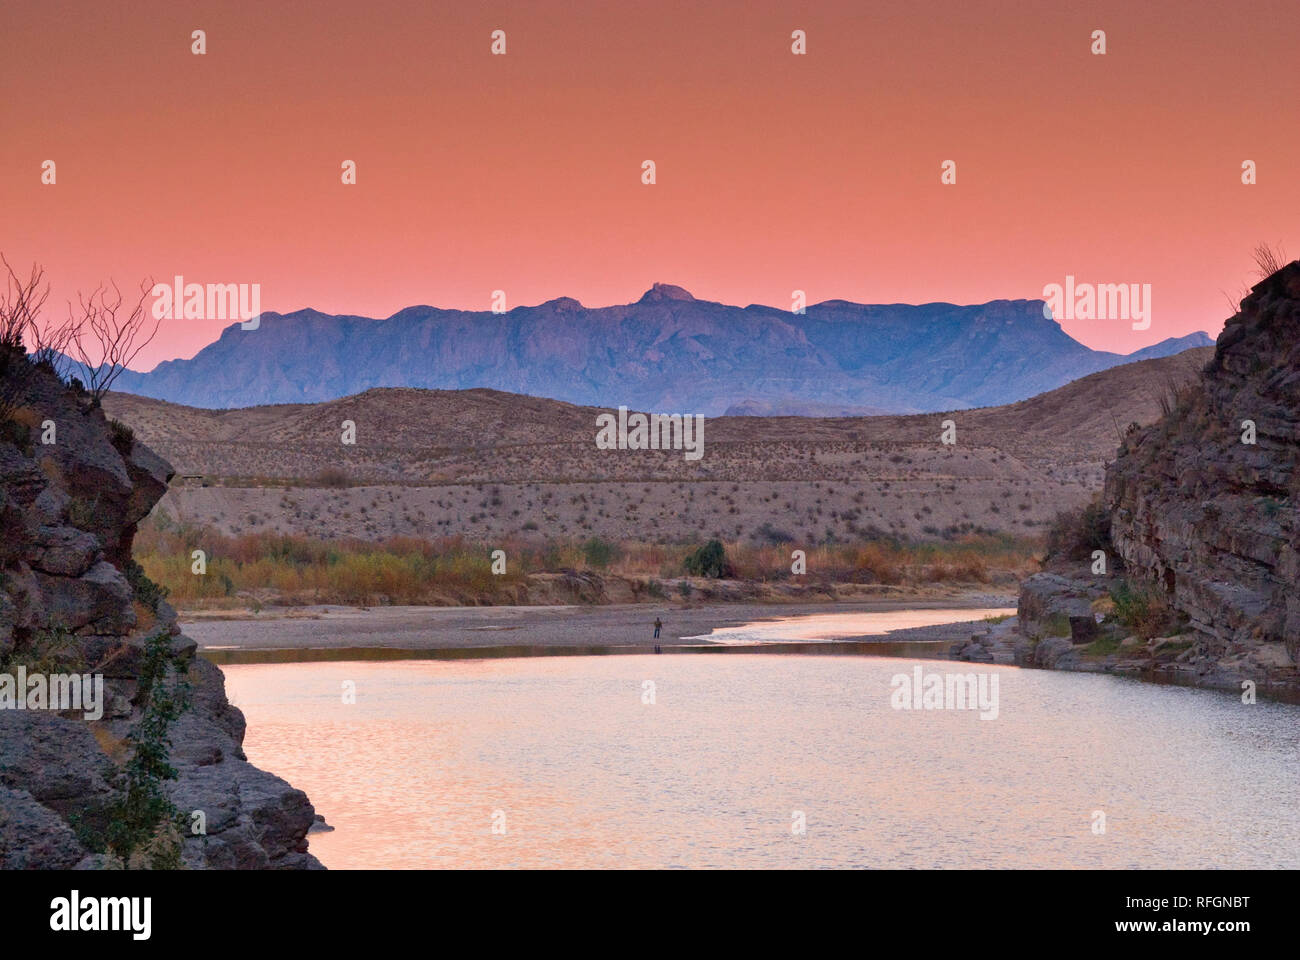 Chisos Mountains seen over Rio Grande from Santa Elena Canyon at sunset, Chihuahuan Desert in Big Bend National Park, Texas, USA Stock Photo